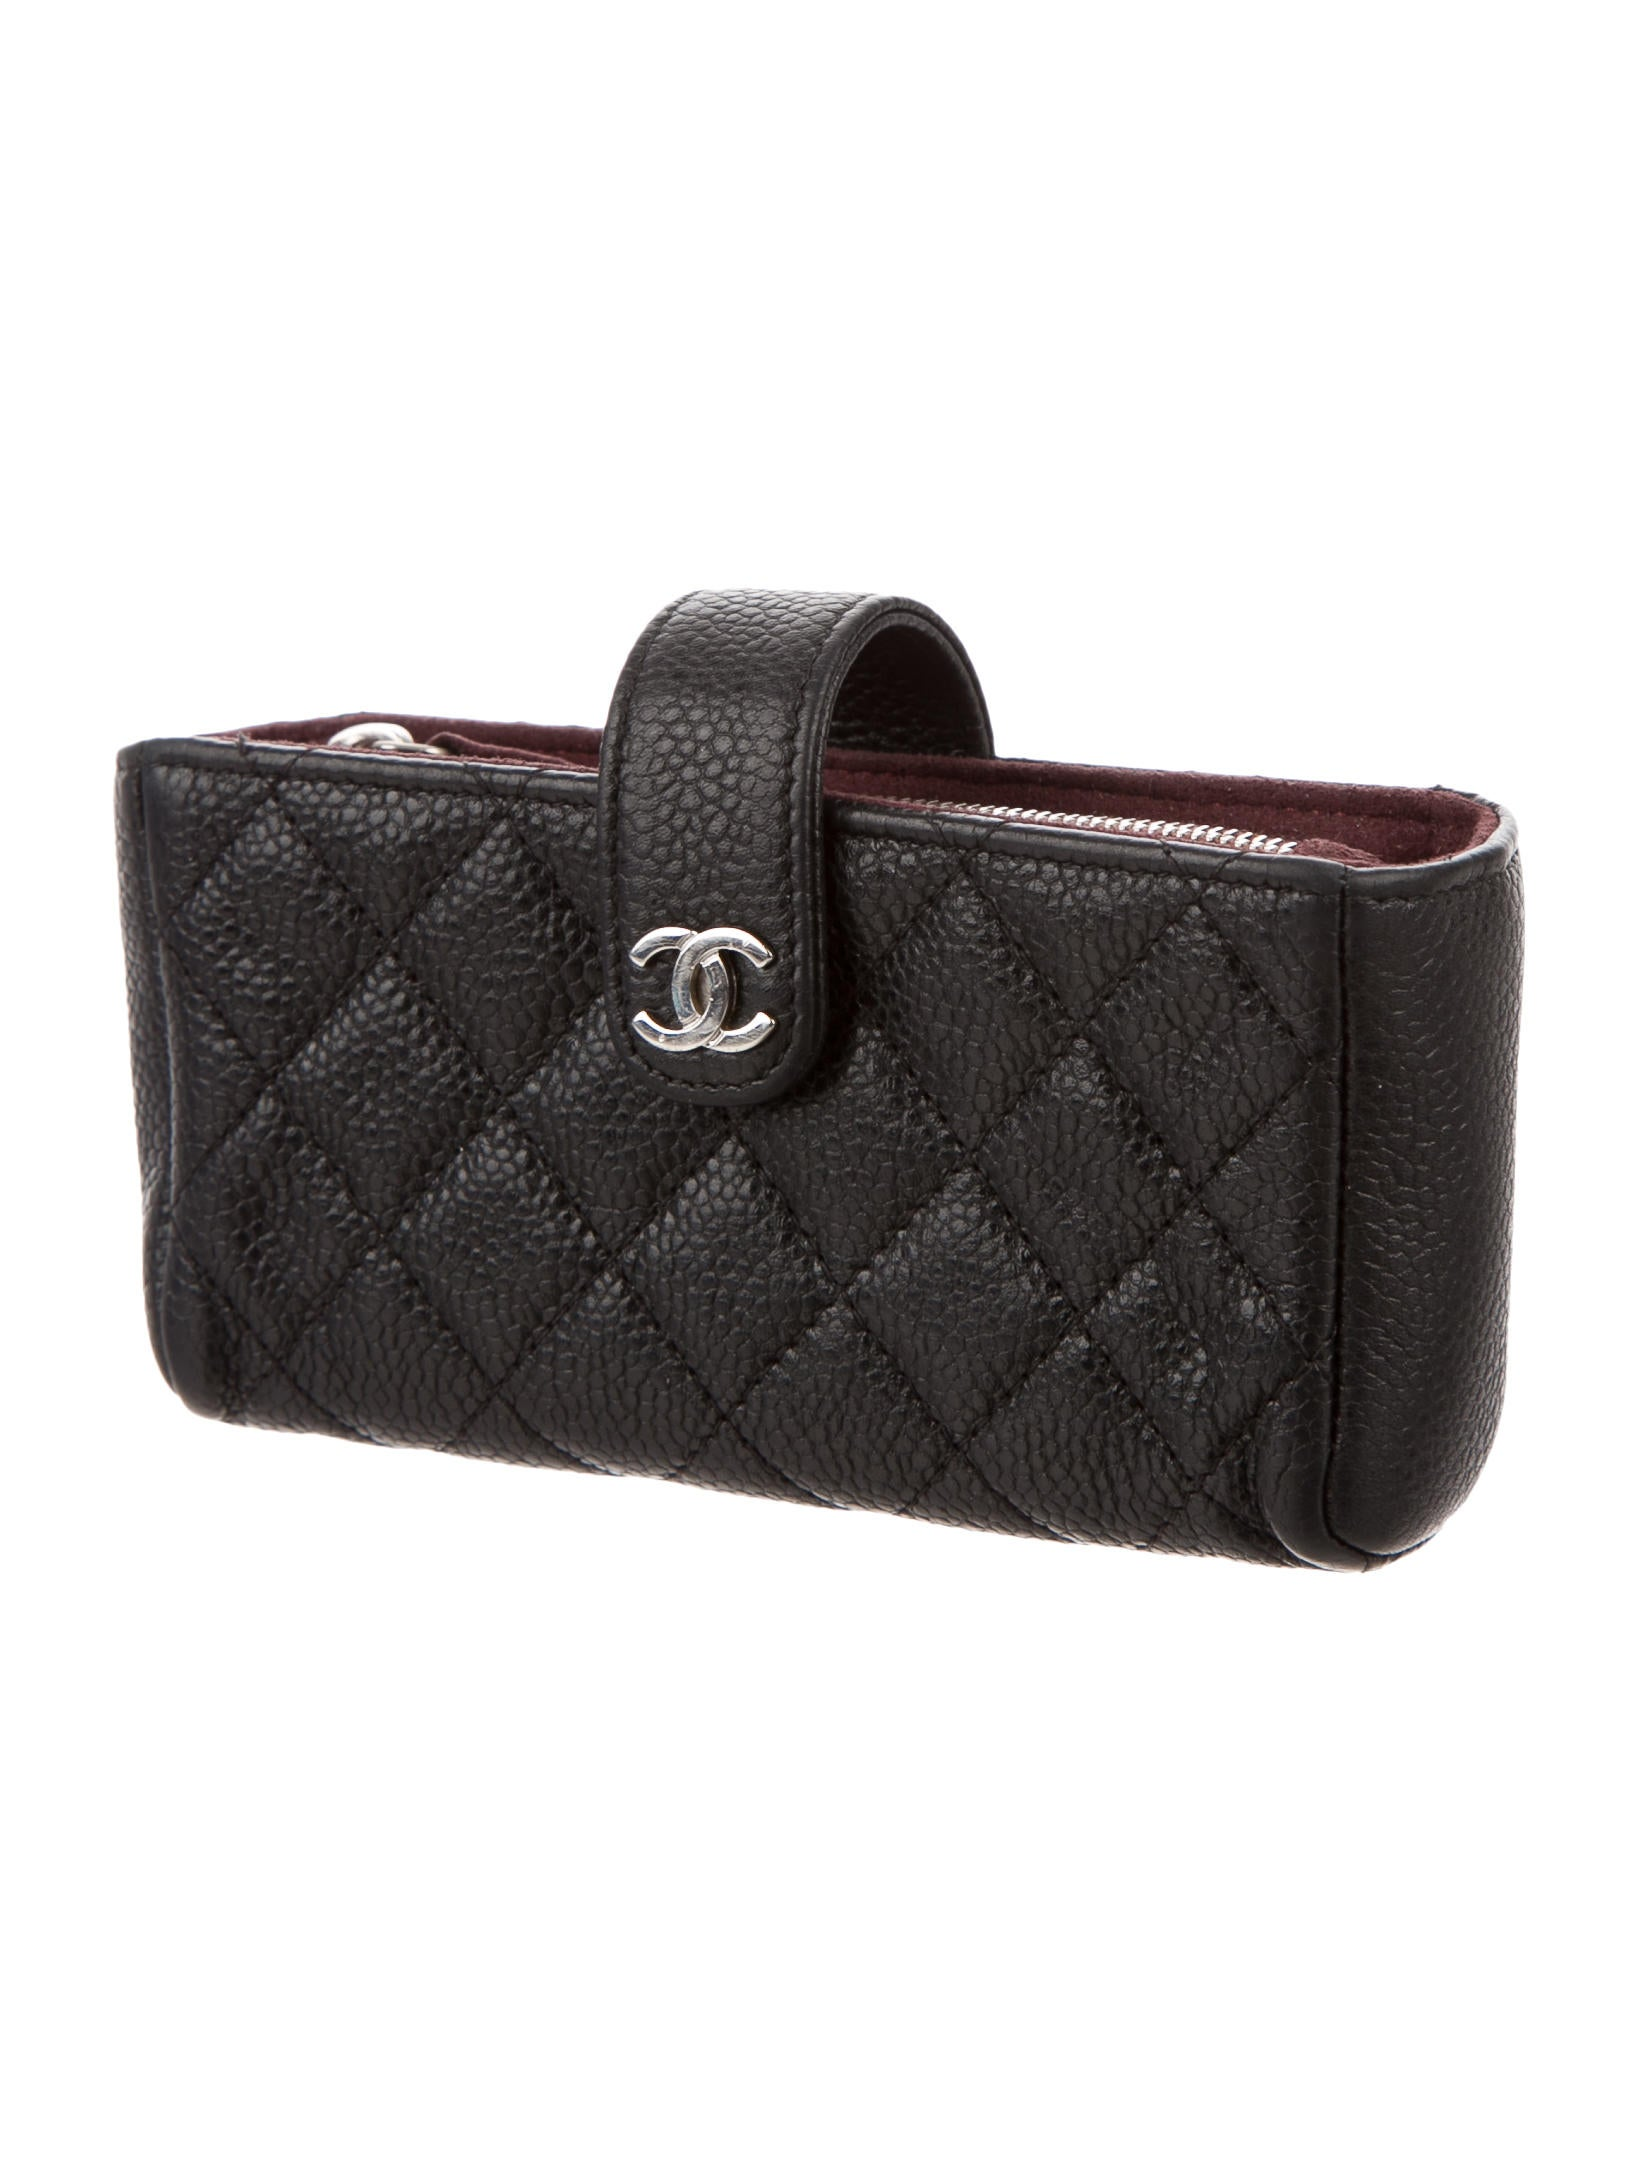 Chanel Caviar Phone Pouch - Accessories - CHA117075 | The ...